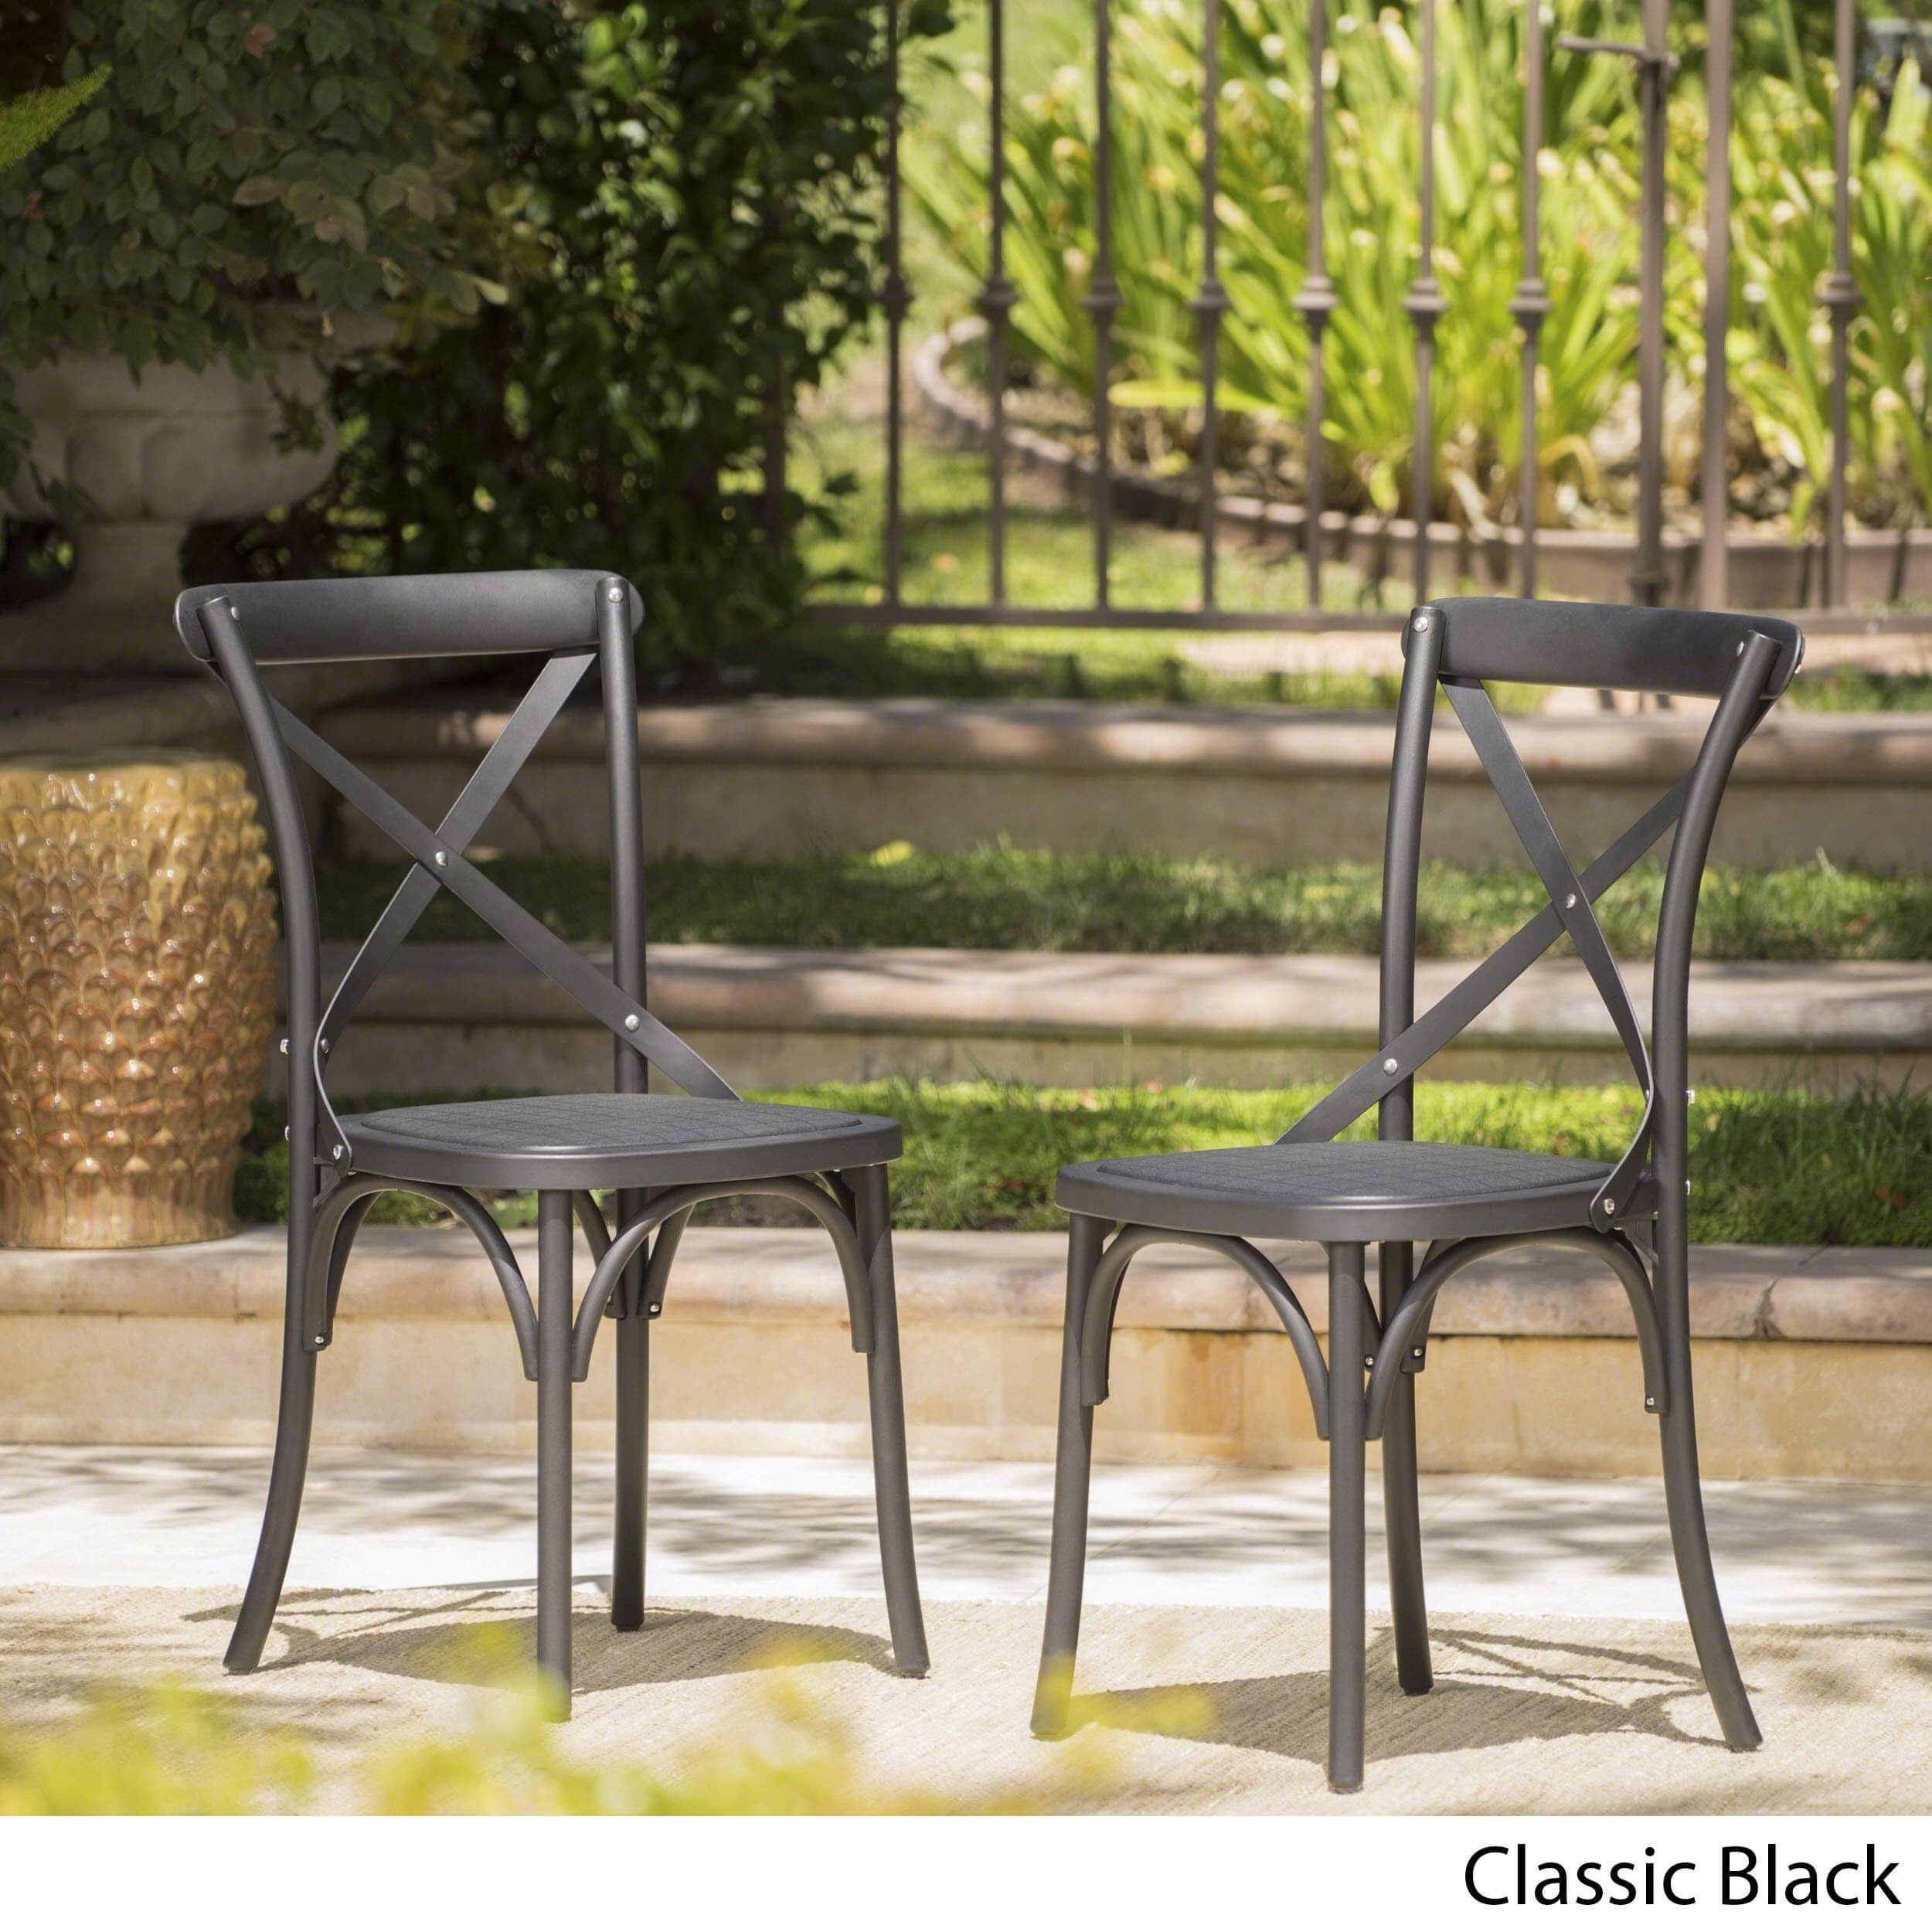 Danish Outdoor Farmhouse Dining Chair Set Of 2 By Christopher Knight Home Classical